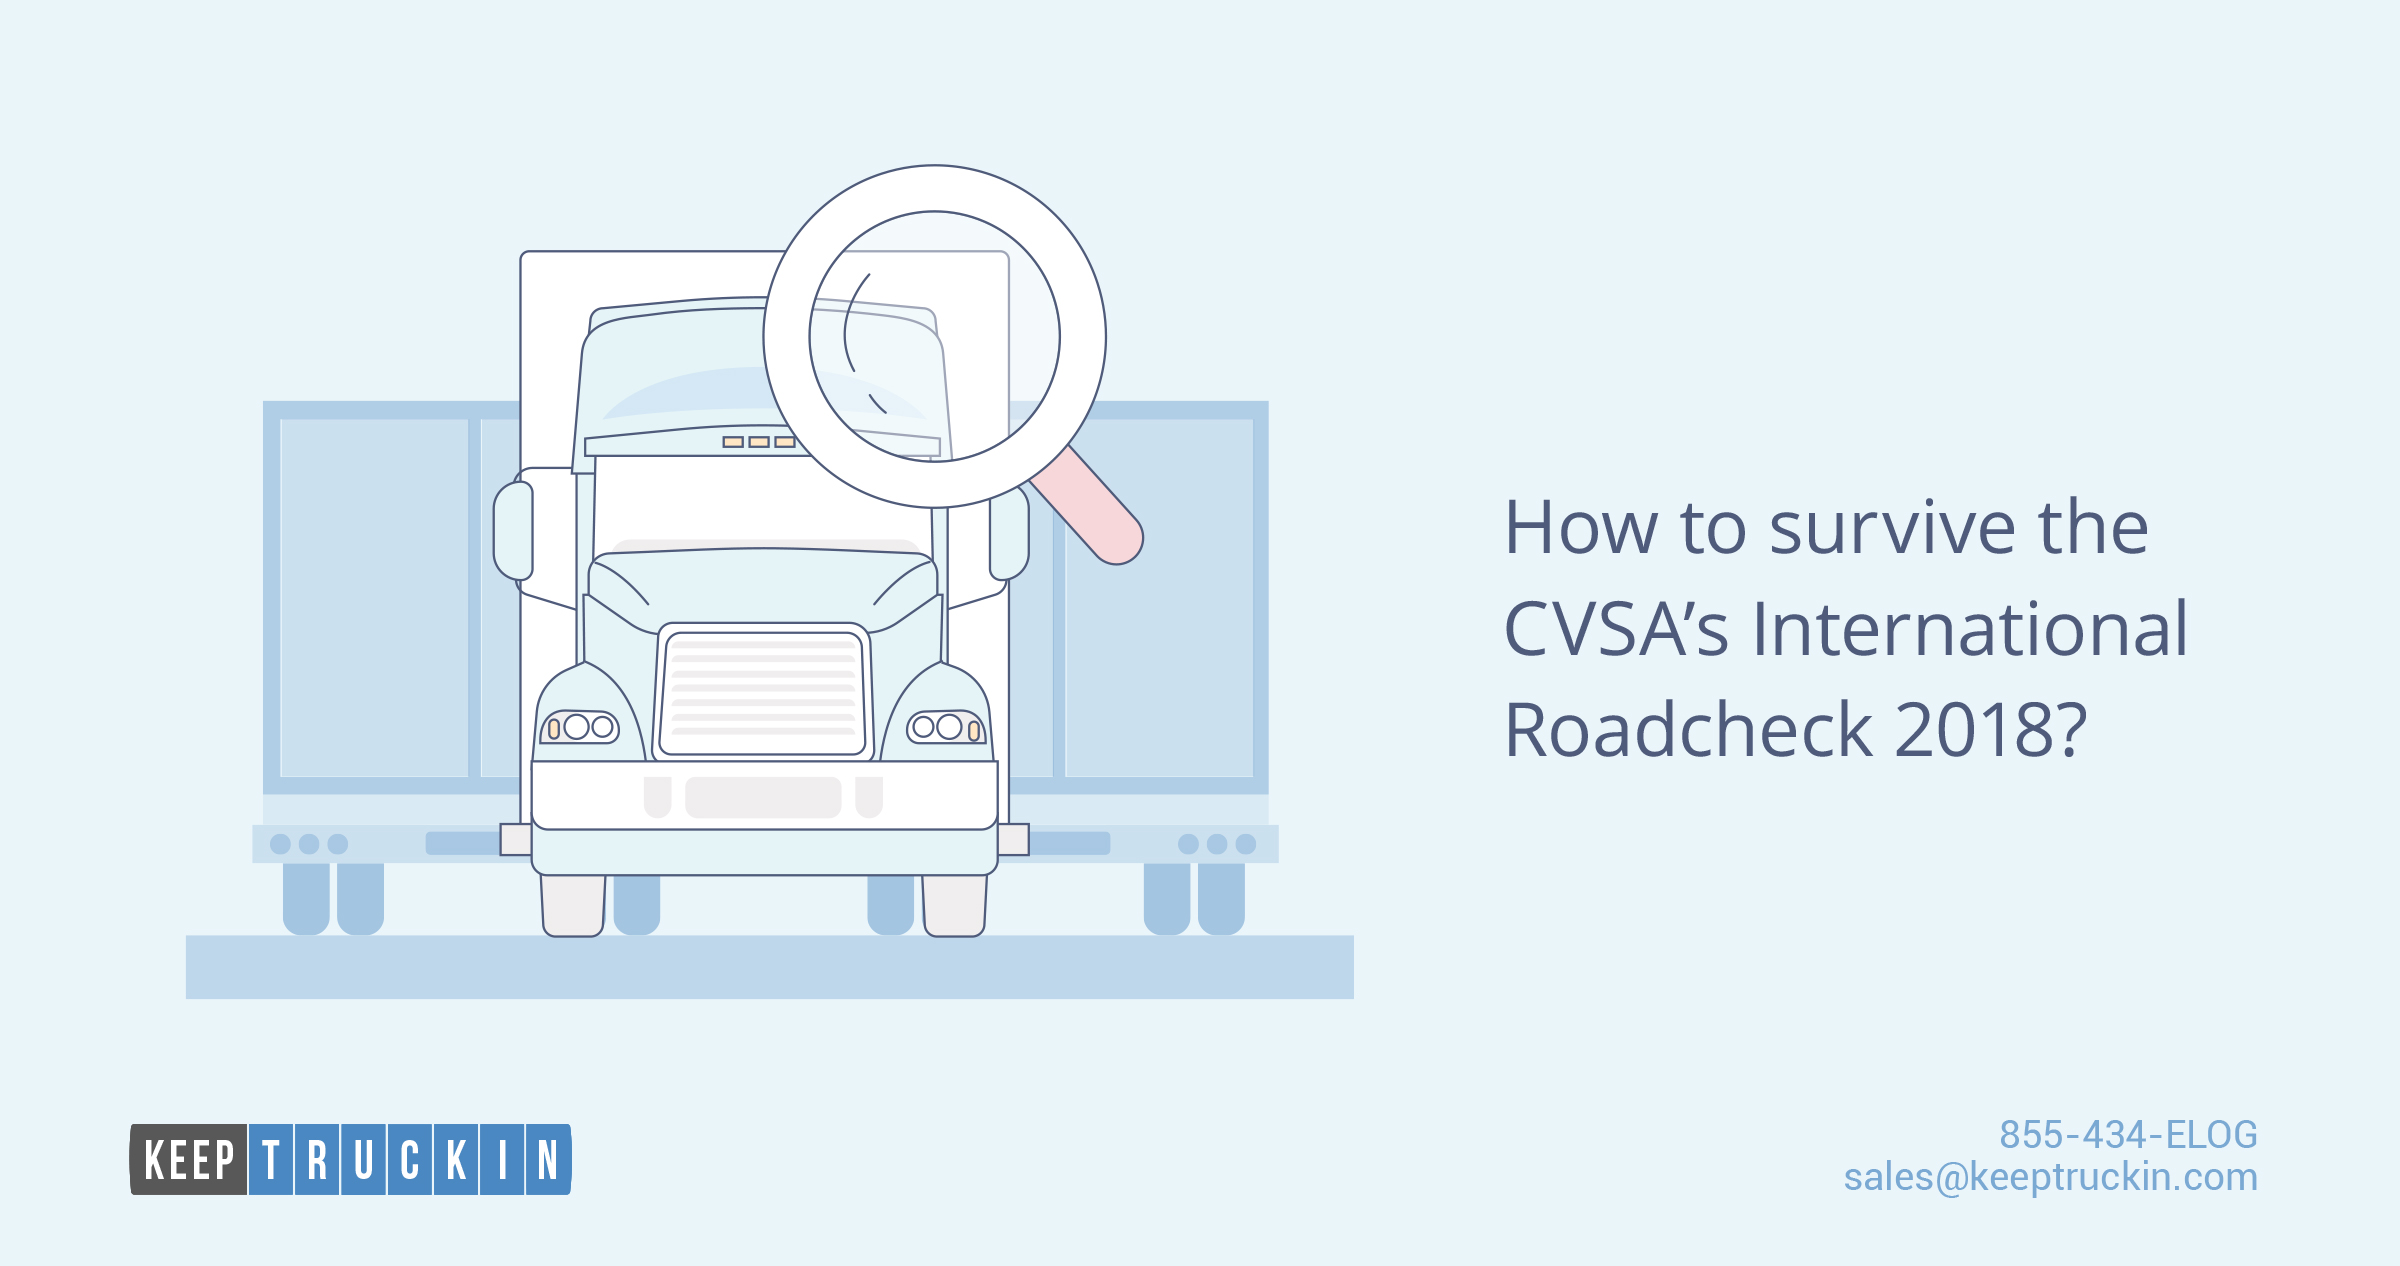 How to survive the CVSA's International Roadcheck 2018